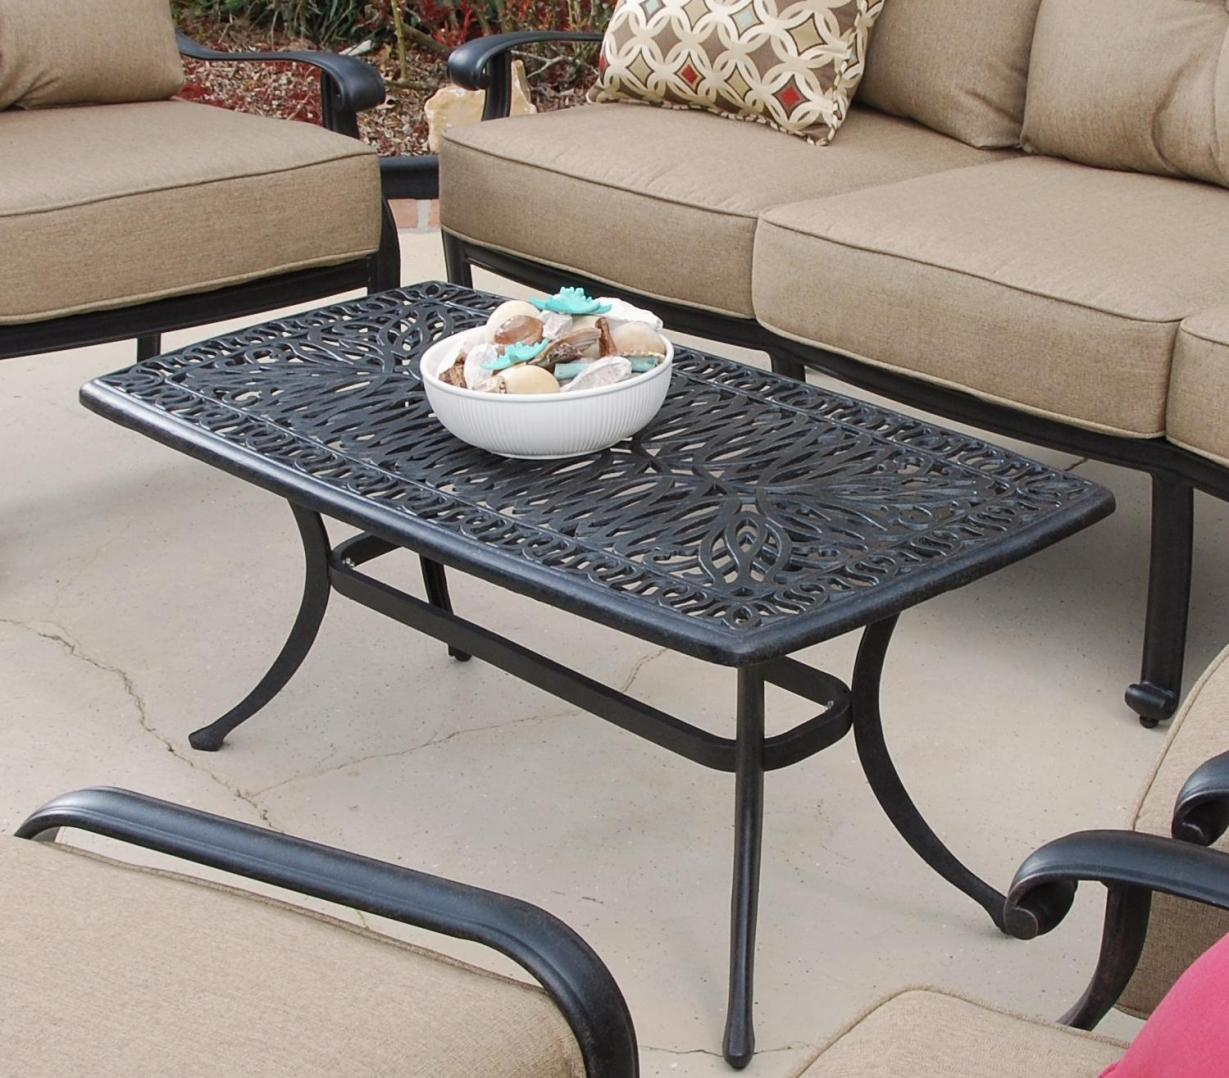 patio table diy outdoor coffee ideas unique wicker side accent full size cloth small end with shelves walnut wide nightstand drawers white round drawer pearl drum stool nautical